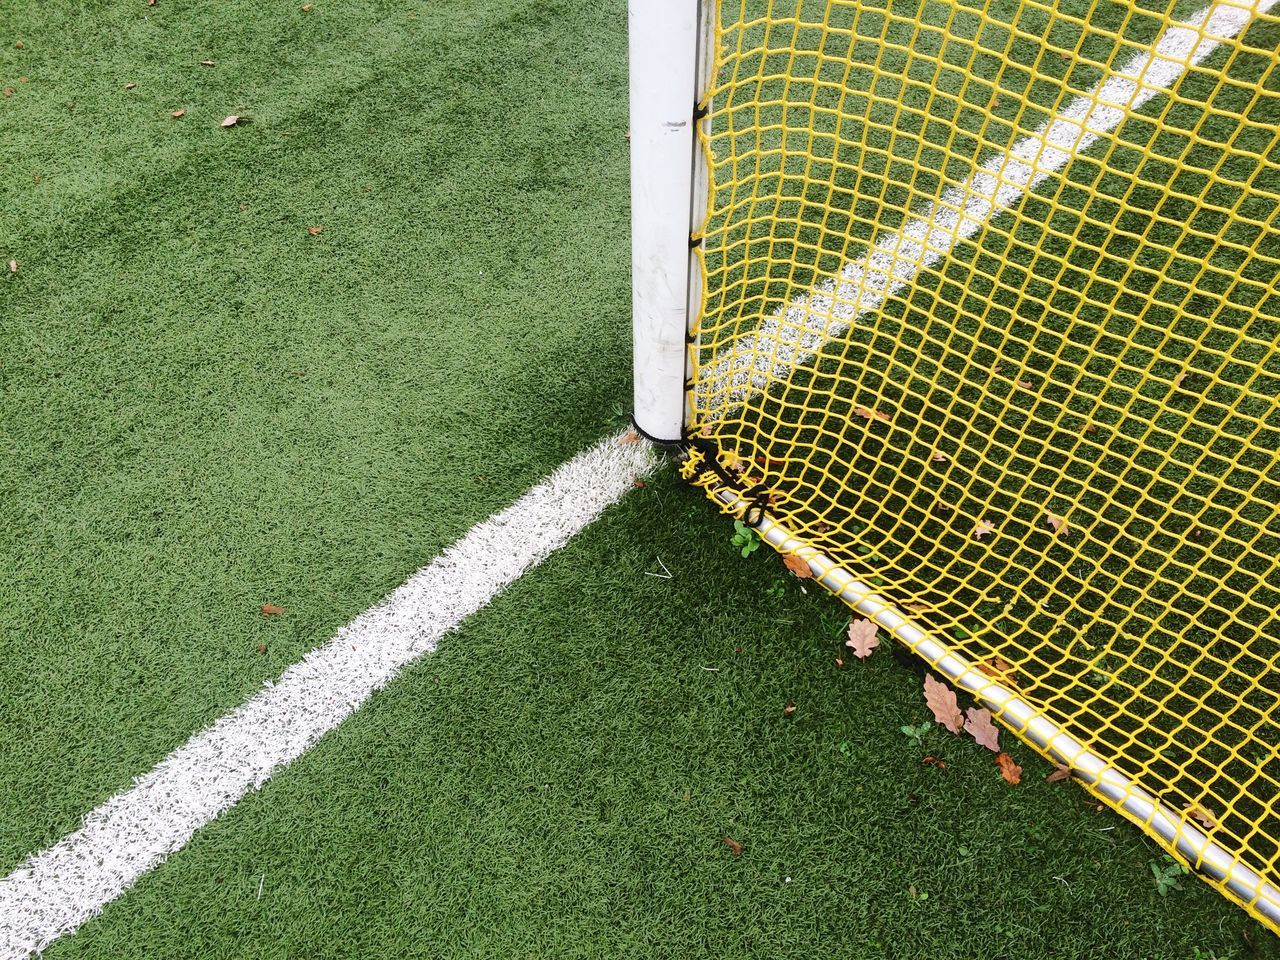 Close-up of net on soccer field